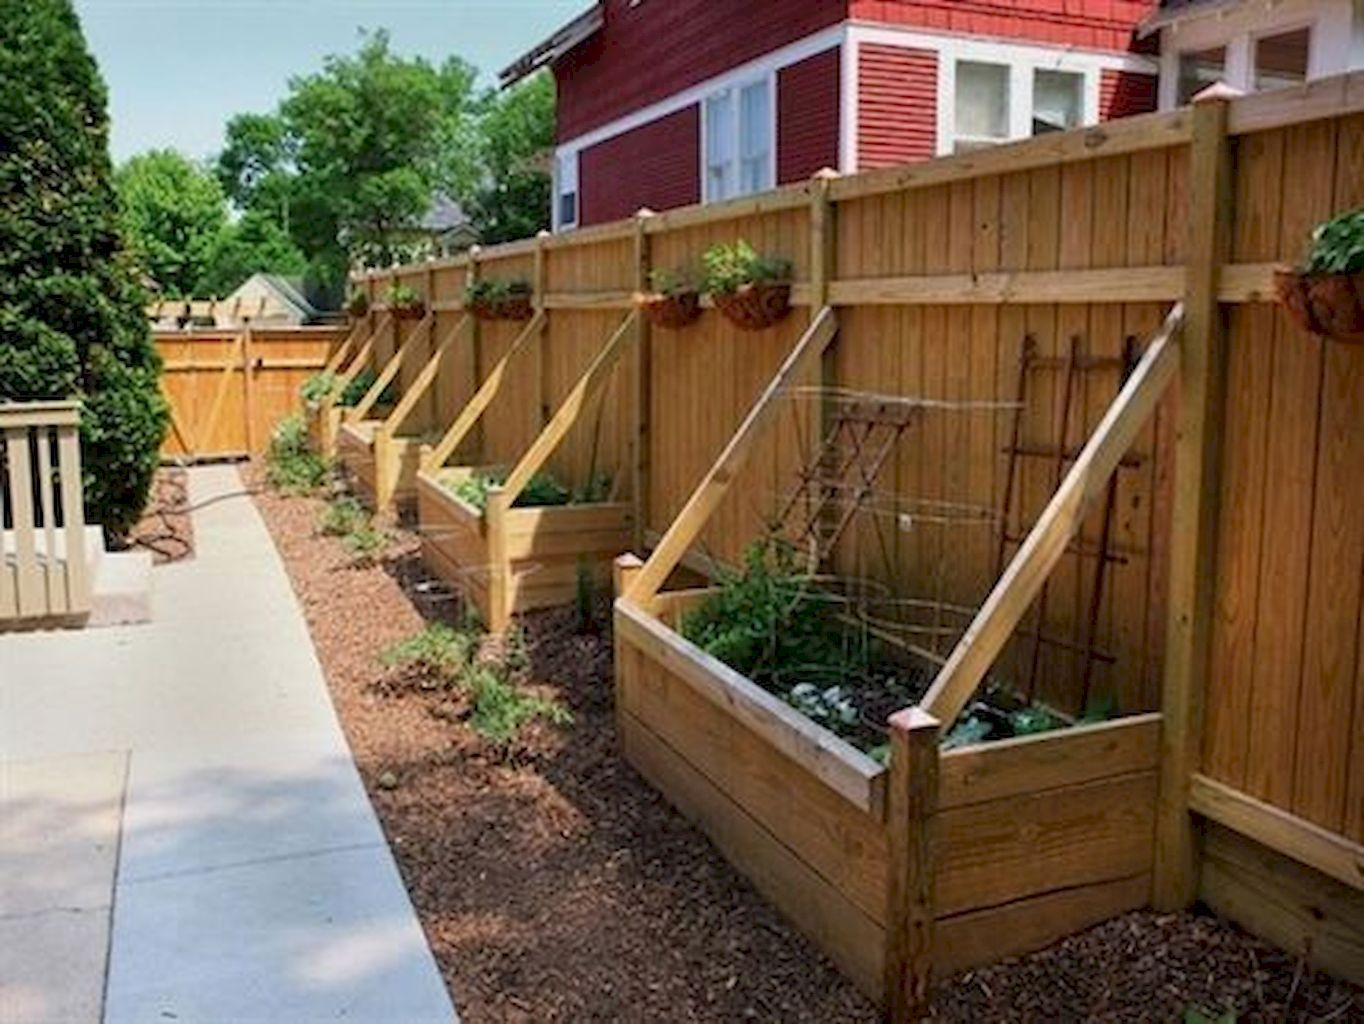 60 diy backyard privacy fence design ideas on a budget on inexpensive way to build a wood privacy fence diy guide for 2020 id=23799